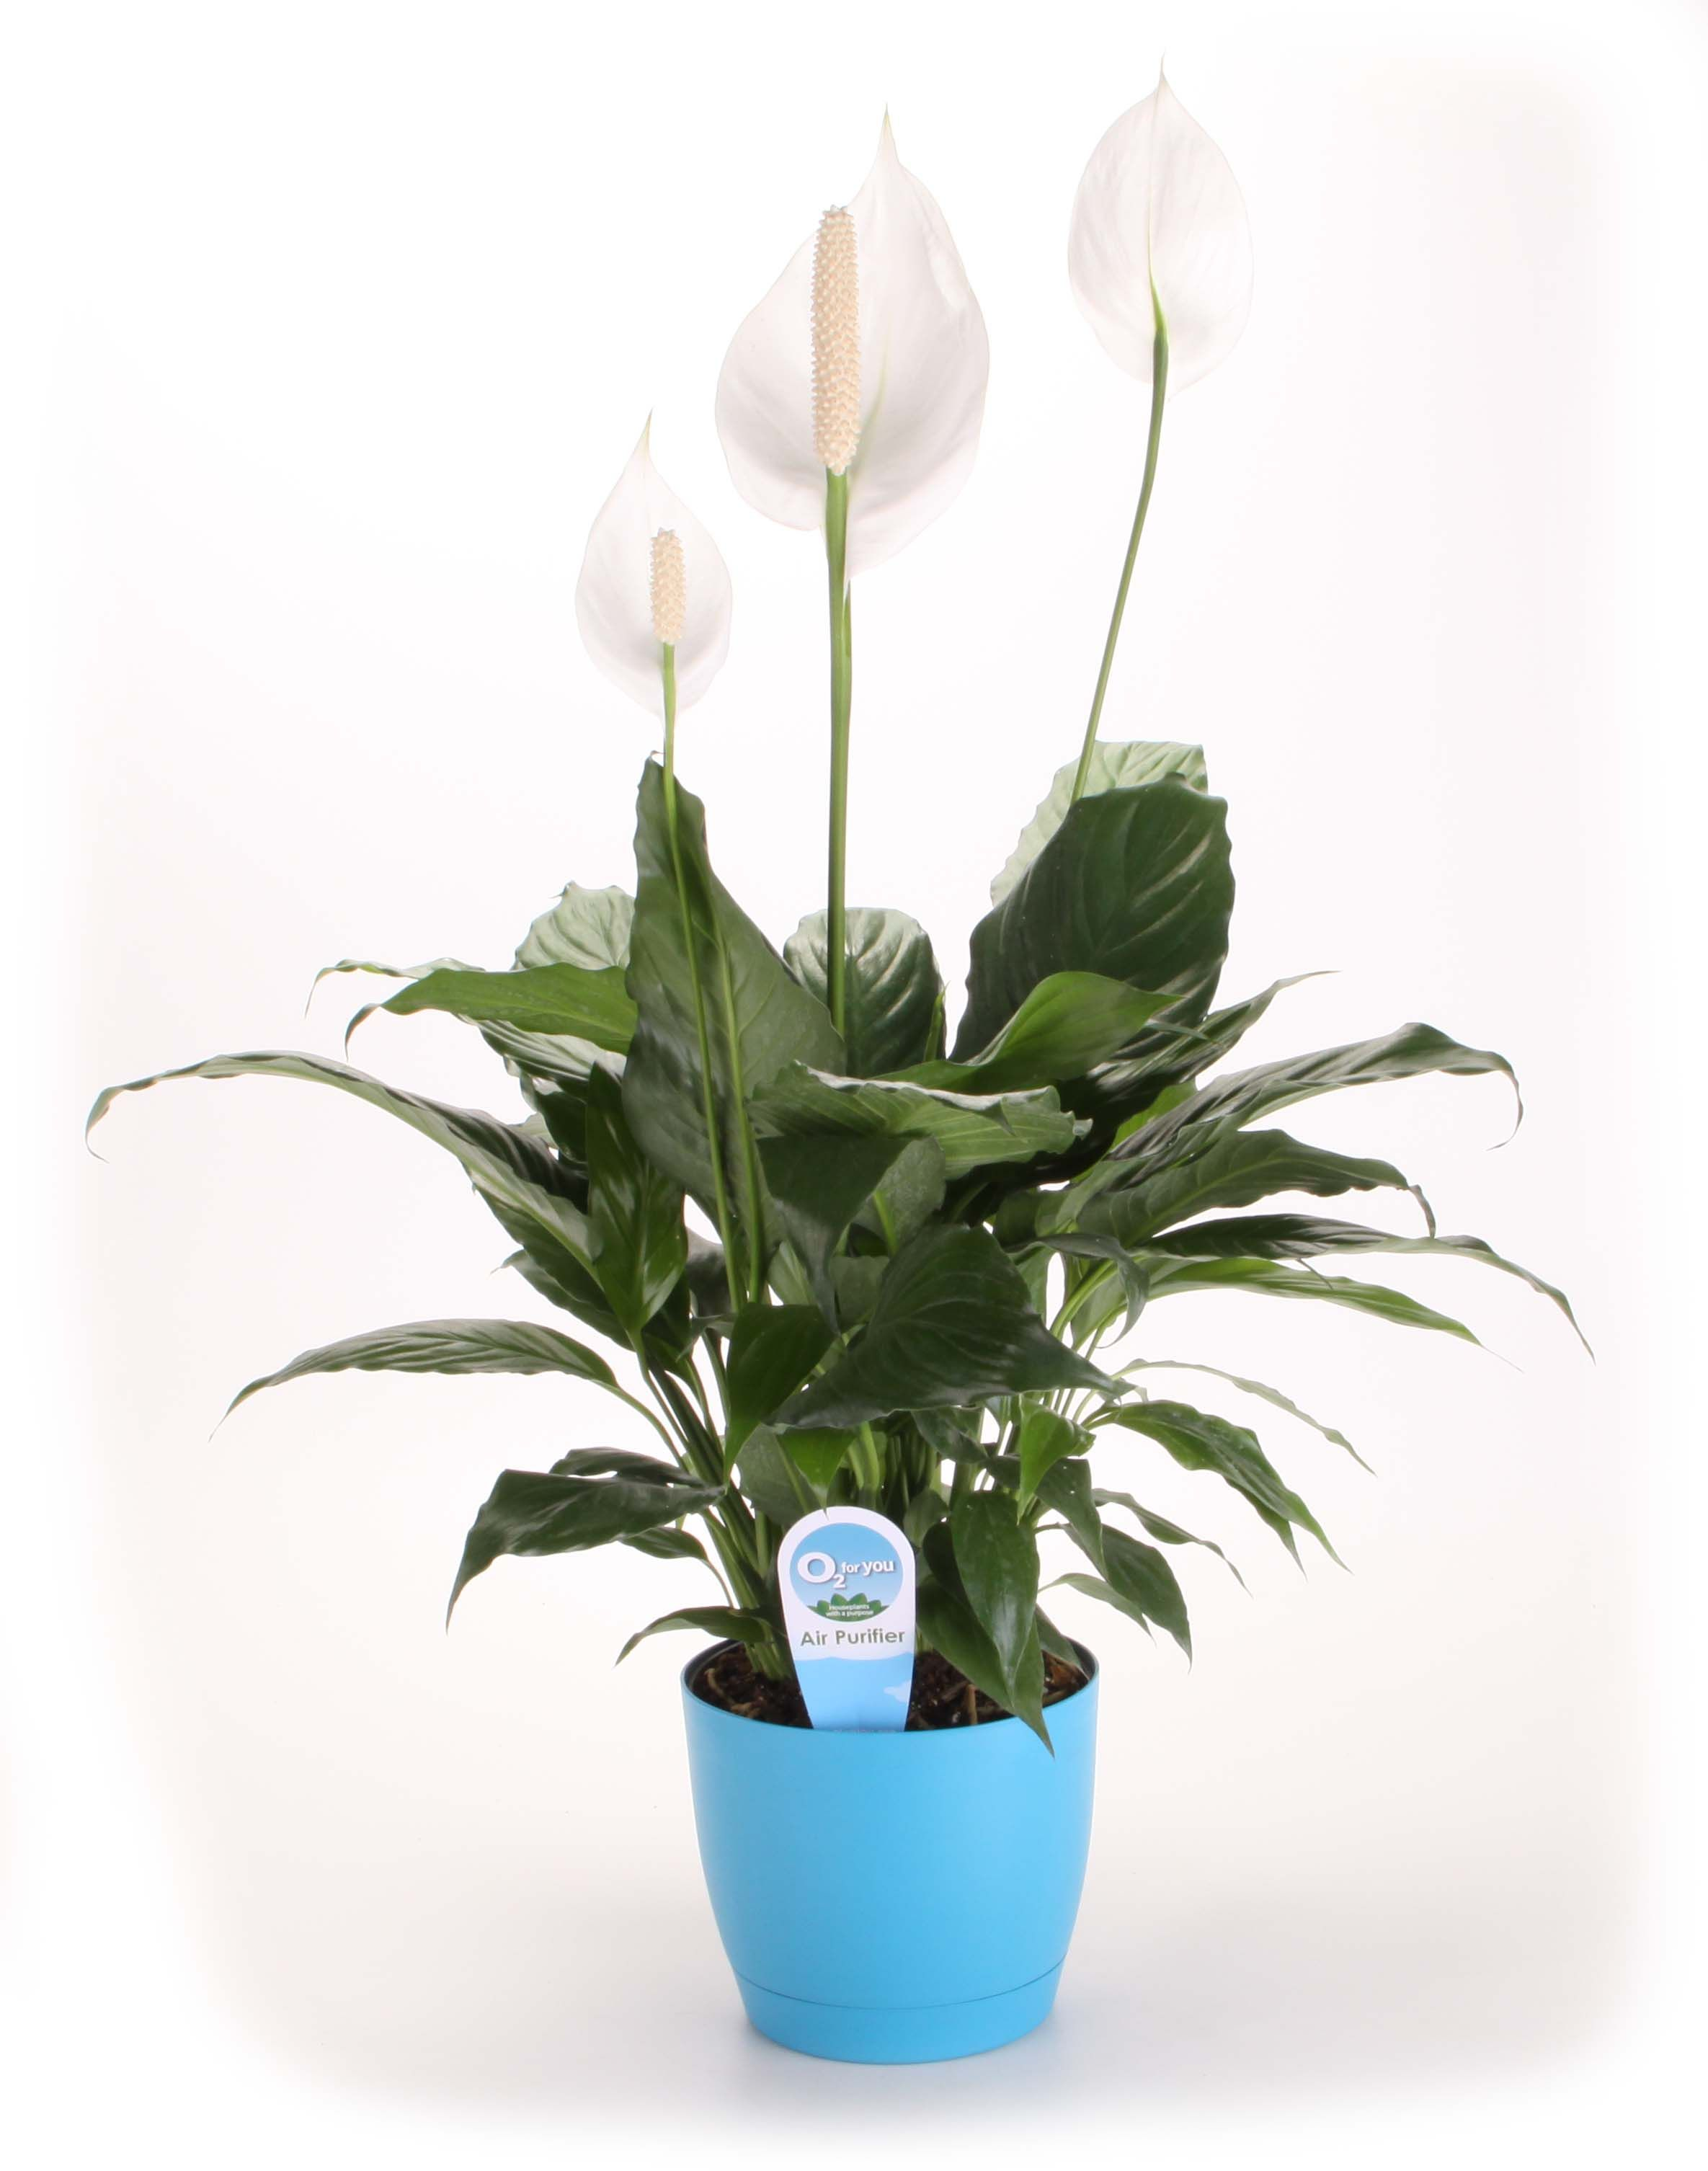 Did you know that keeping certain plants indoors can actually did you know that keeping certain plants indoors can actually improve the air quality of your home or office the peace lily or spathiphyllum izmirmasajfo